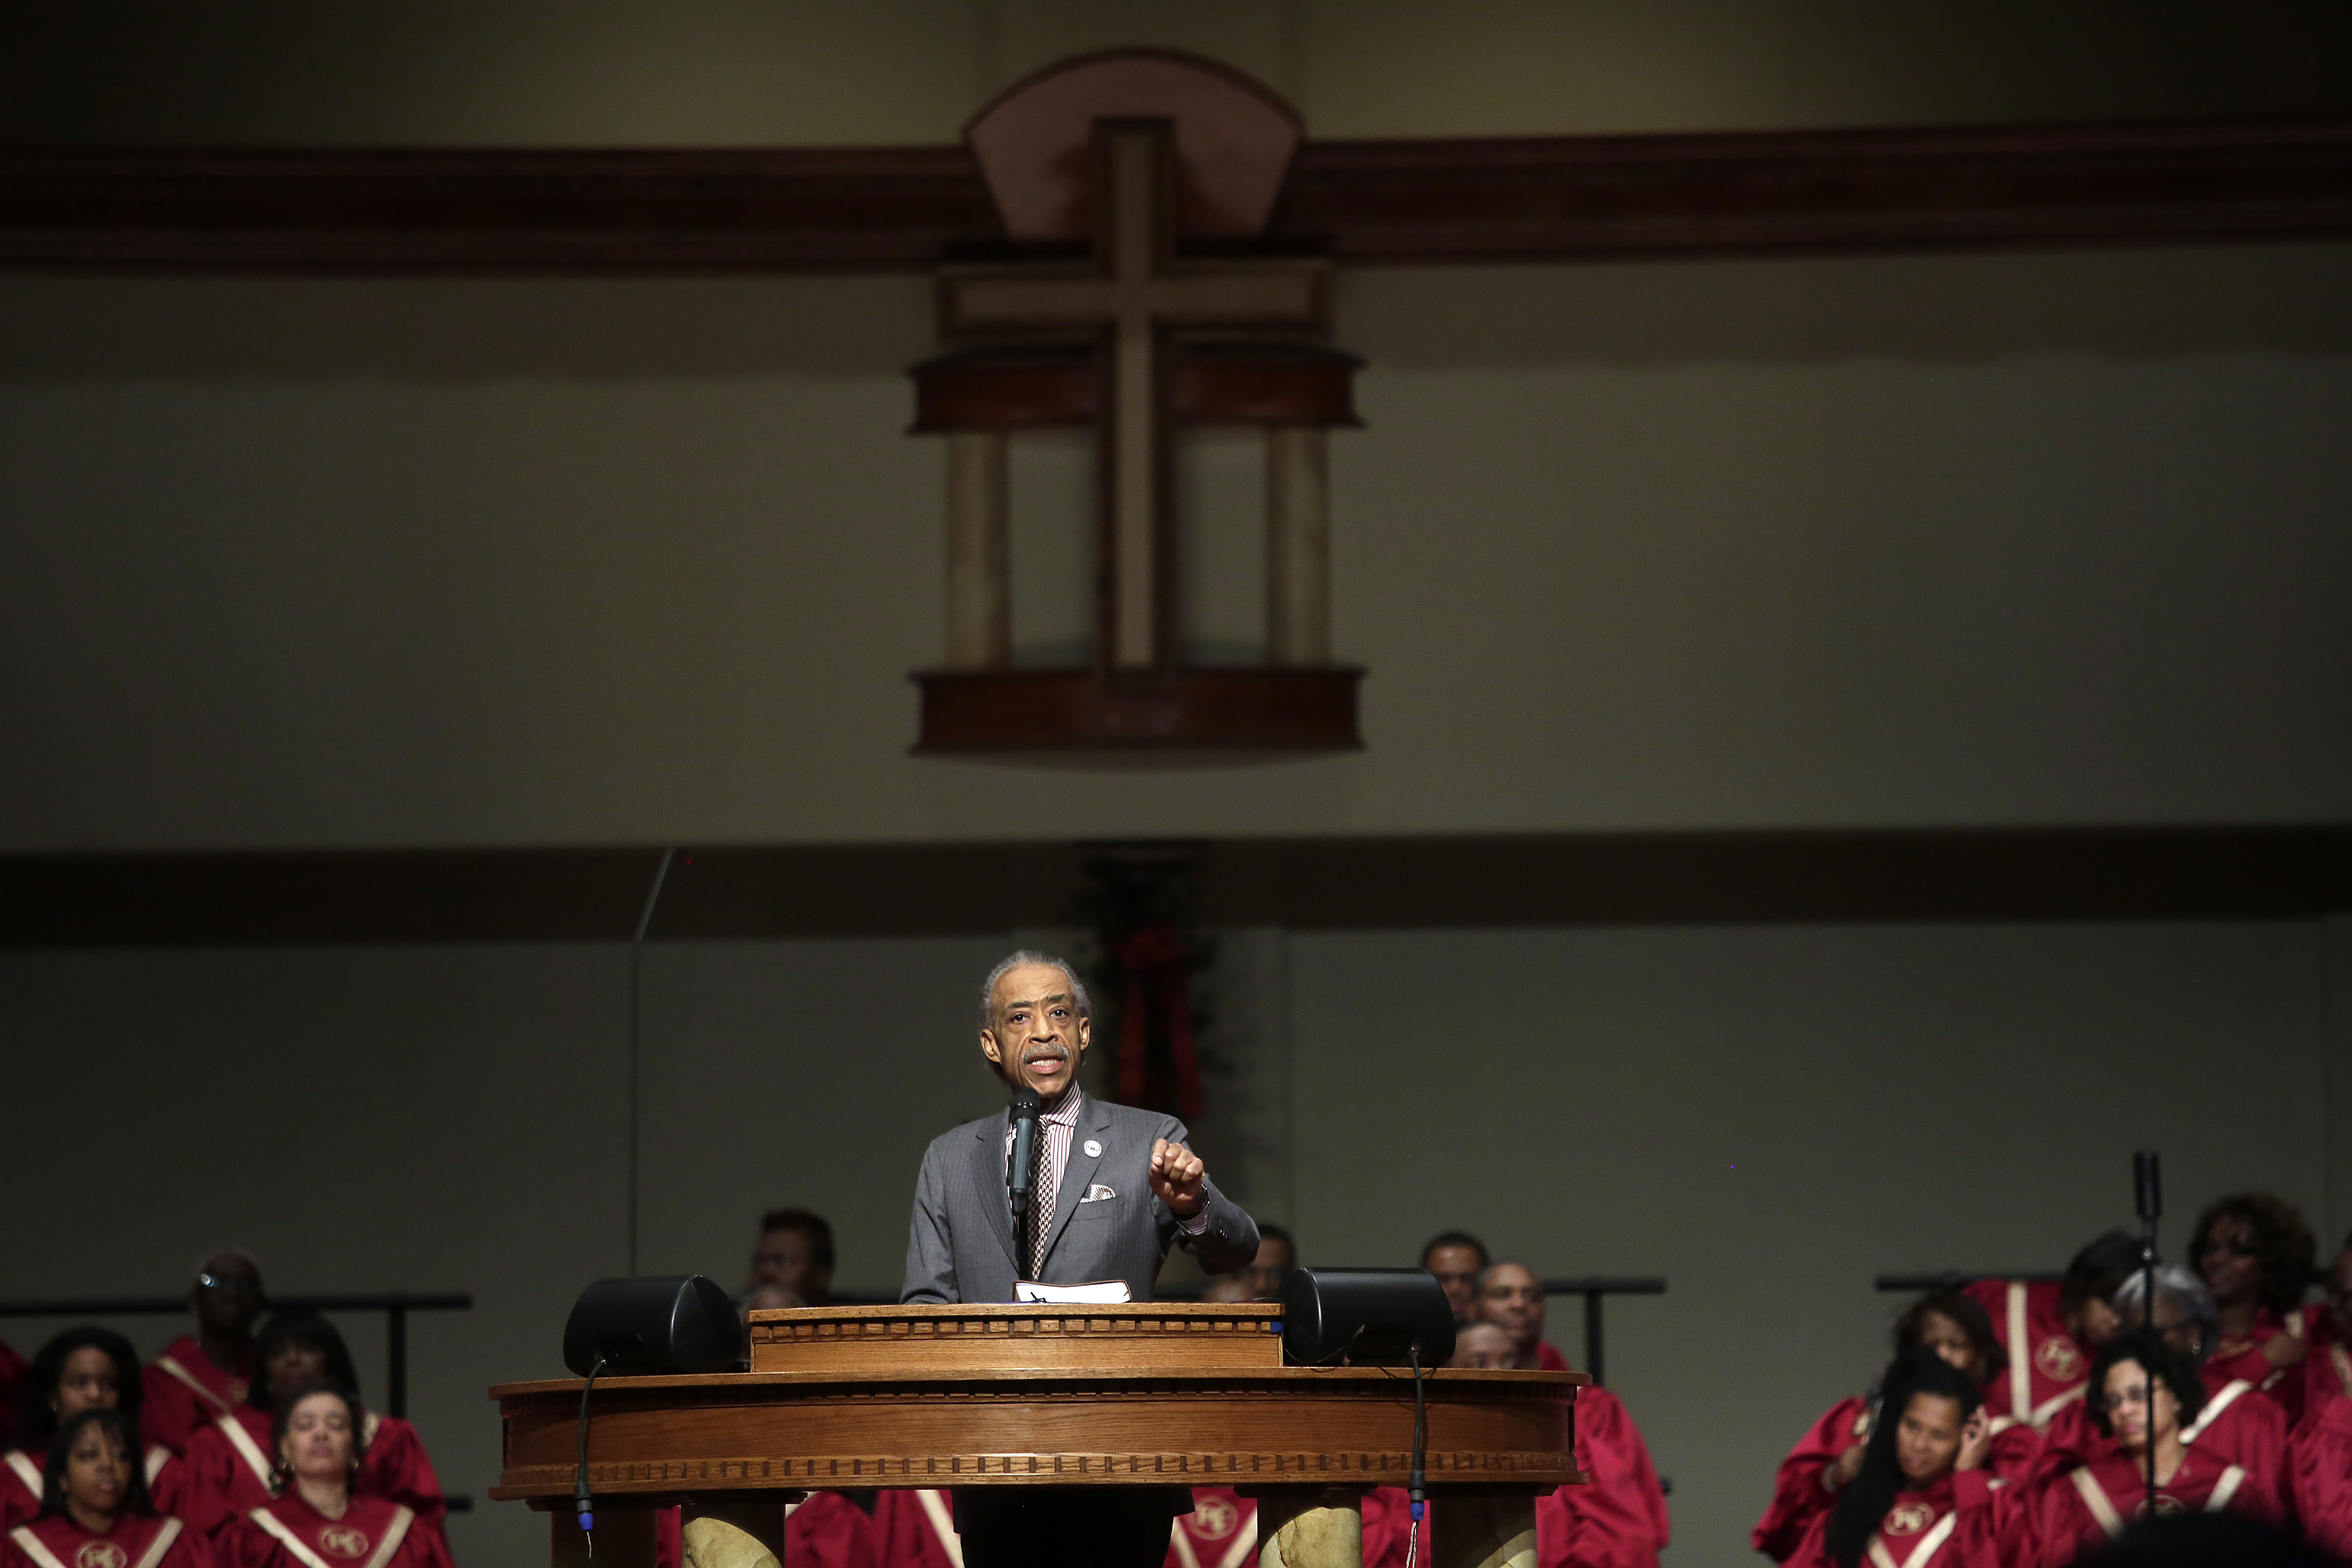 American Christianity has long struggled to be on the right side of racial justice